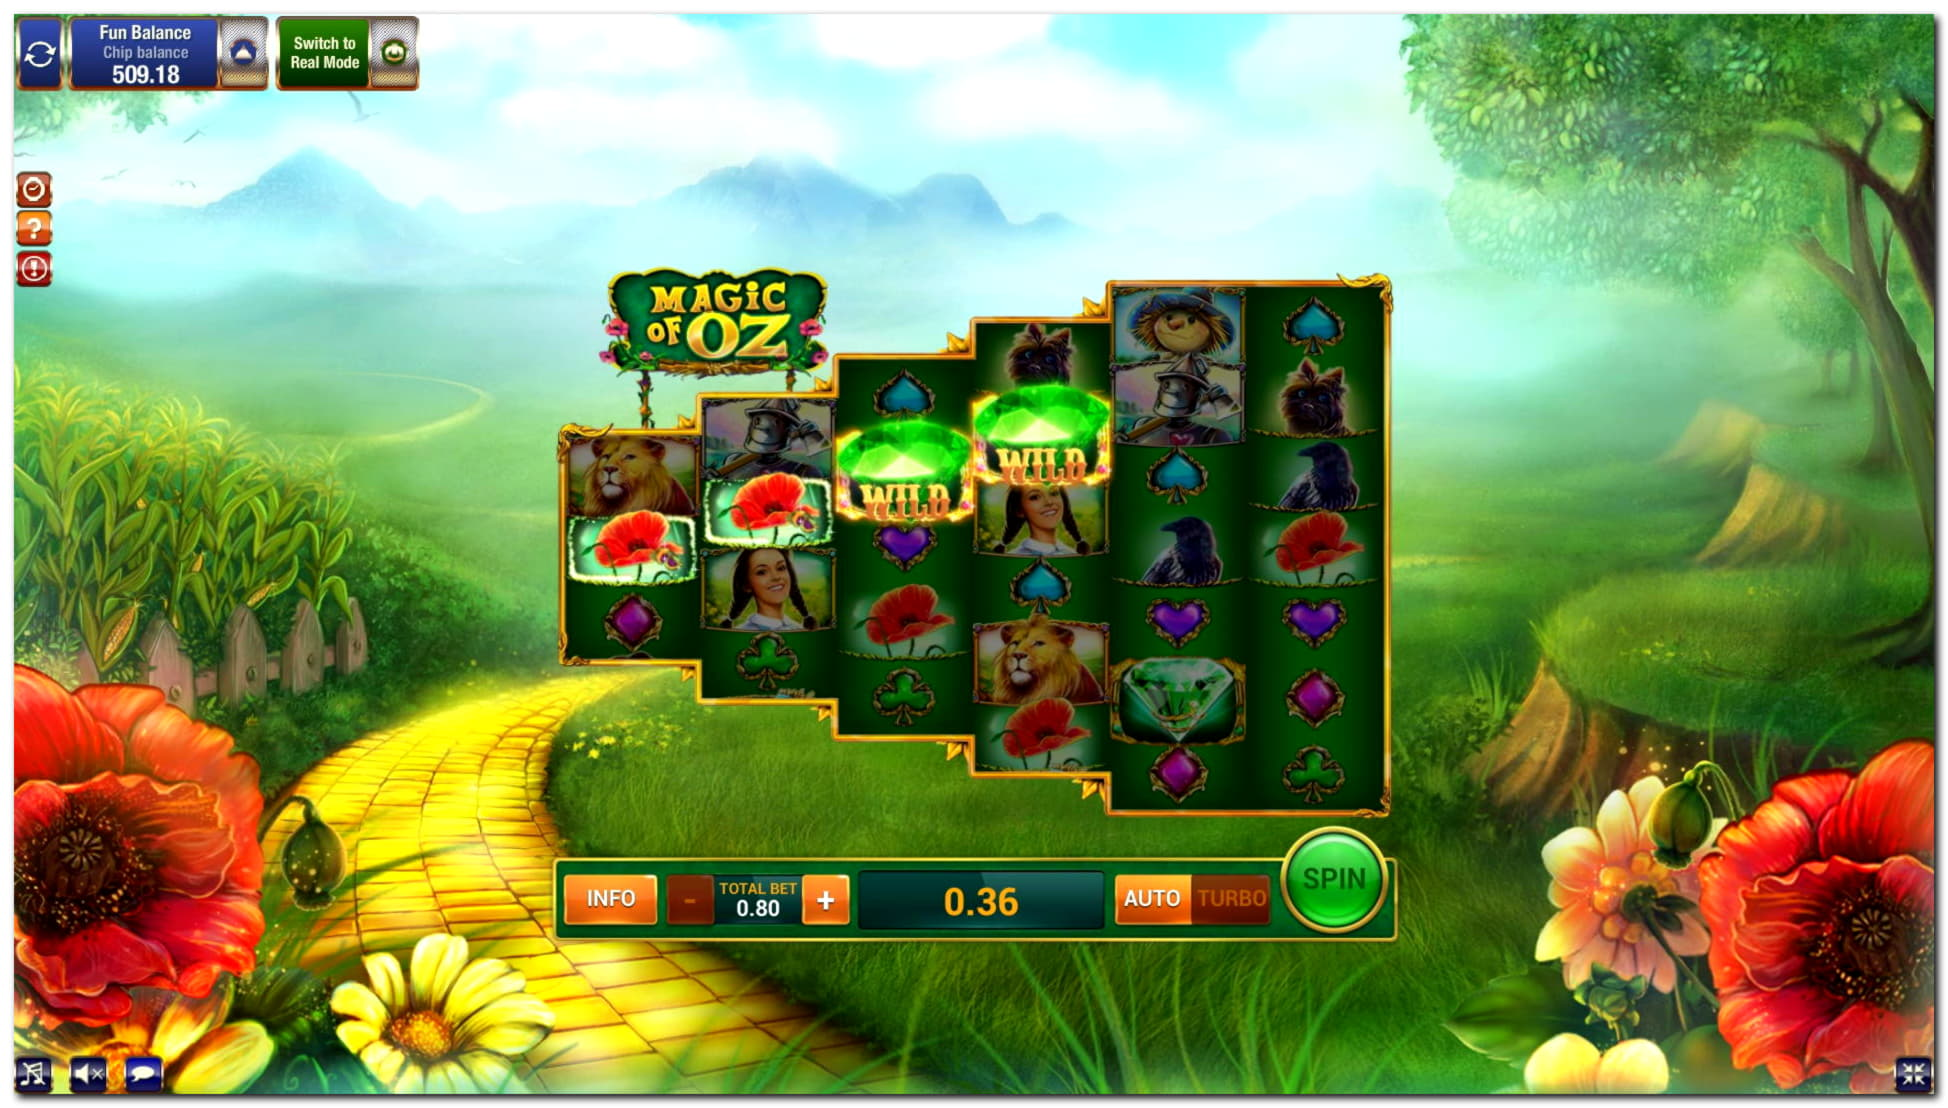 285 Free casino spins at Spins Royale Casino